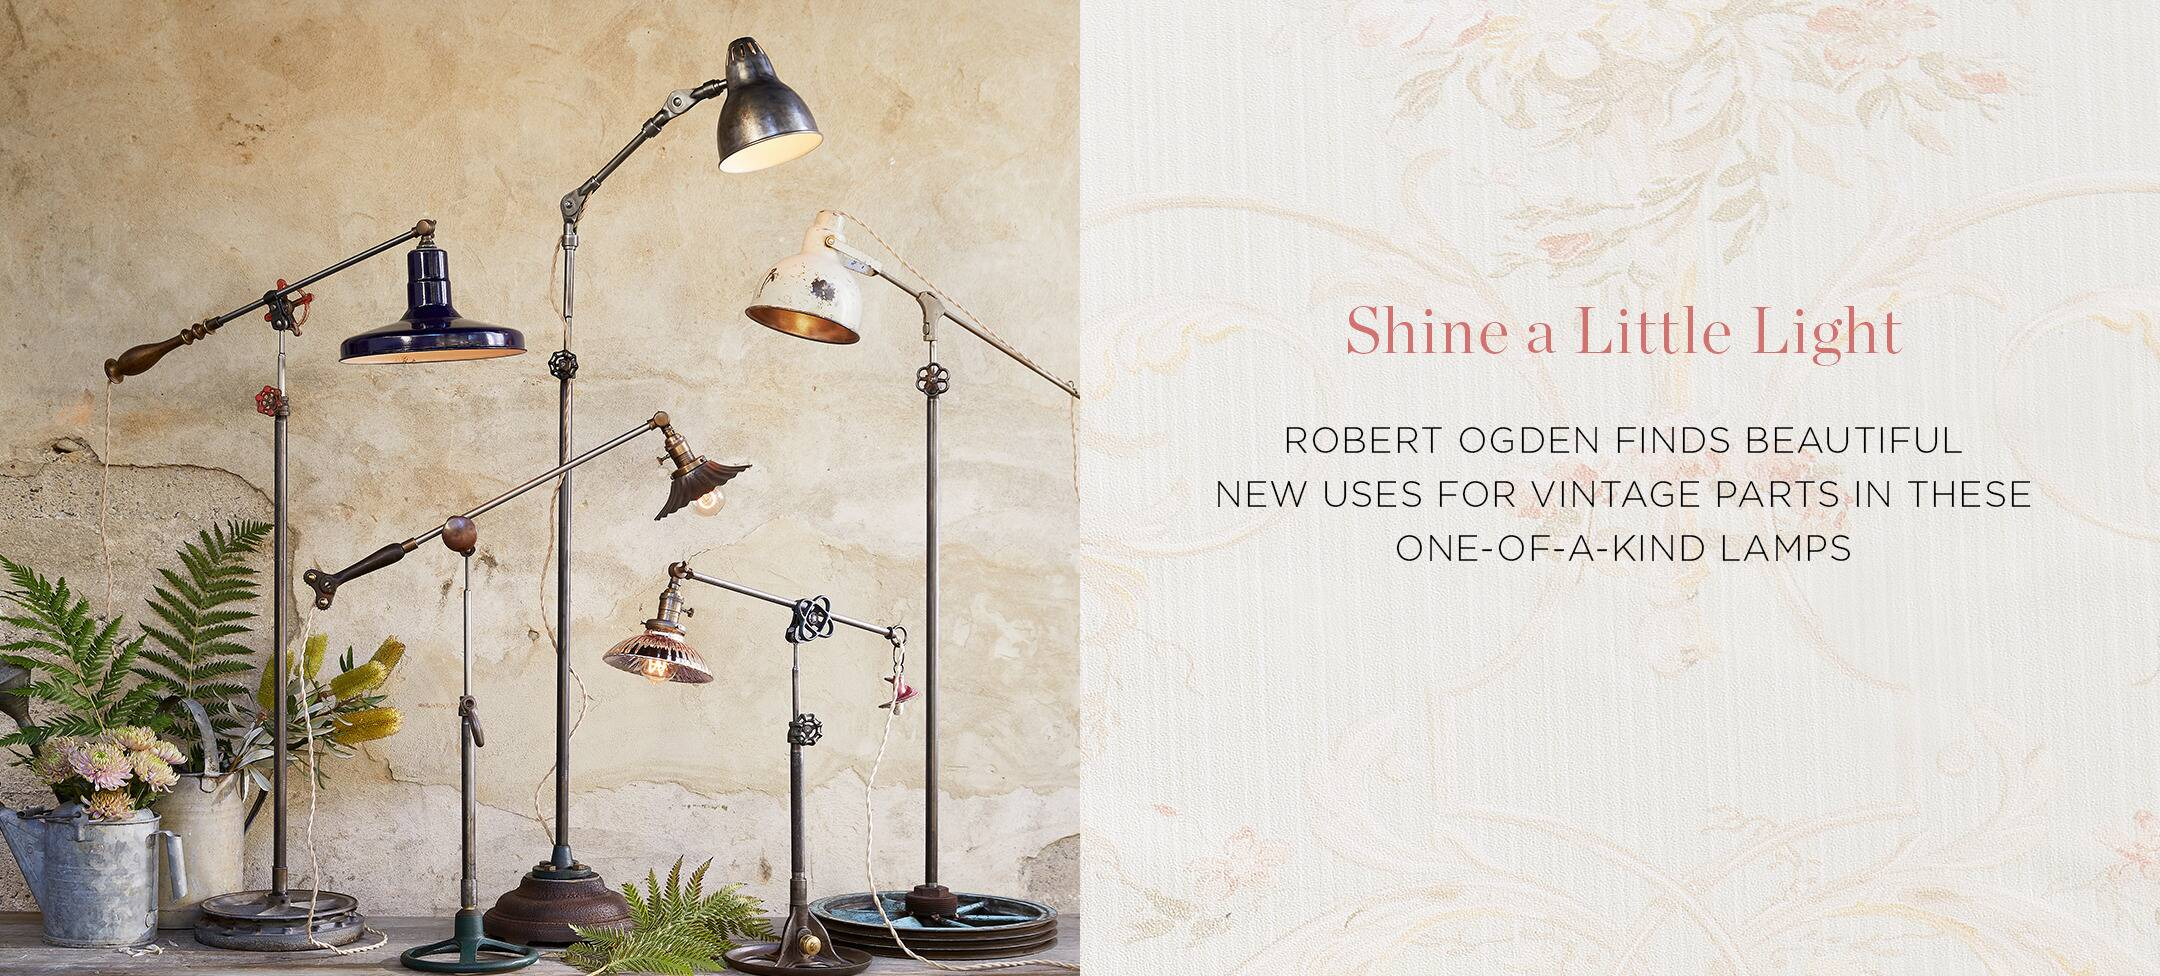 One-of-a-Kind Lighting